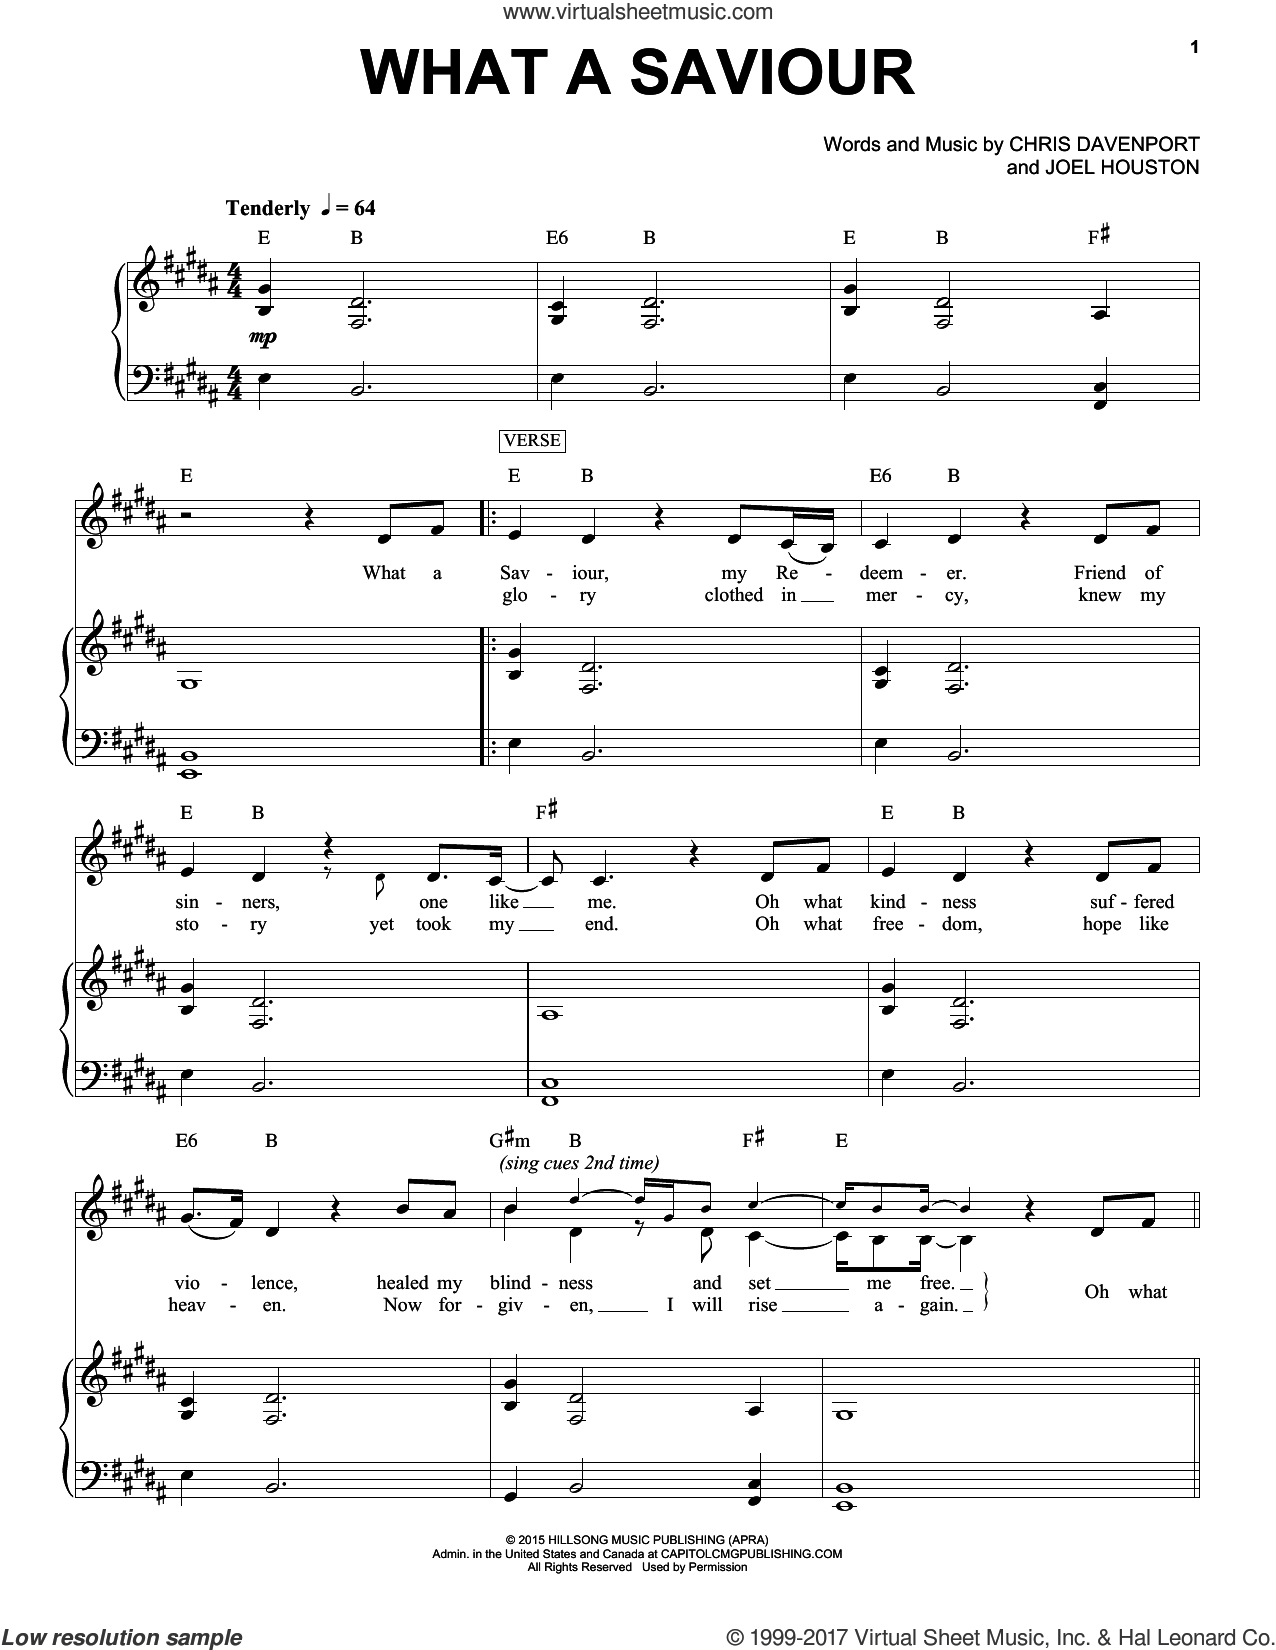 What A Saviour sheet music for voice and piano by Hillsong Worship, Chris Davenport and Joel Houston, intermediate skill level